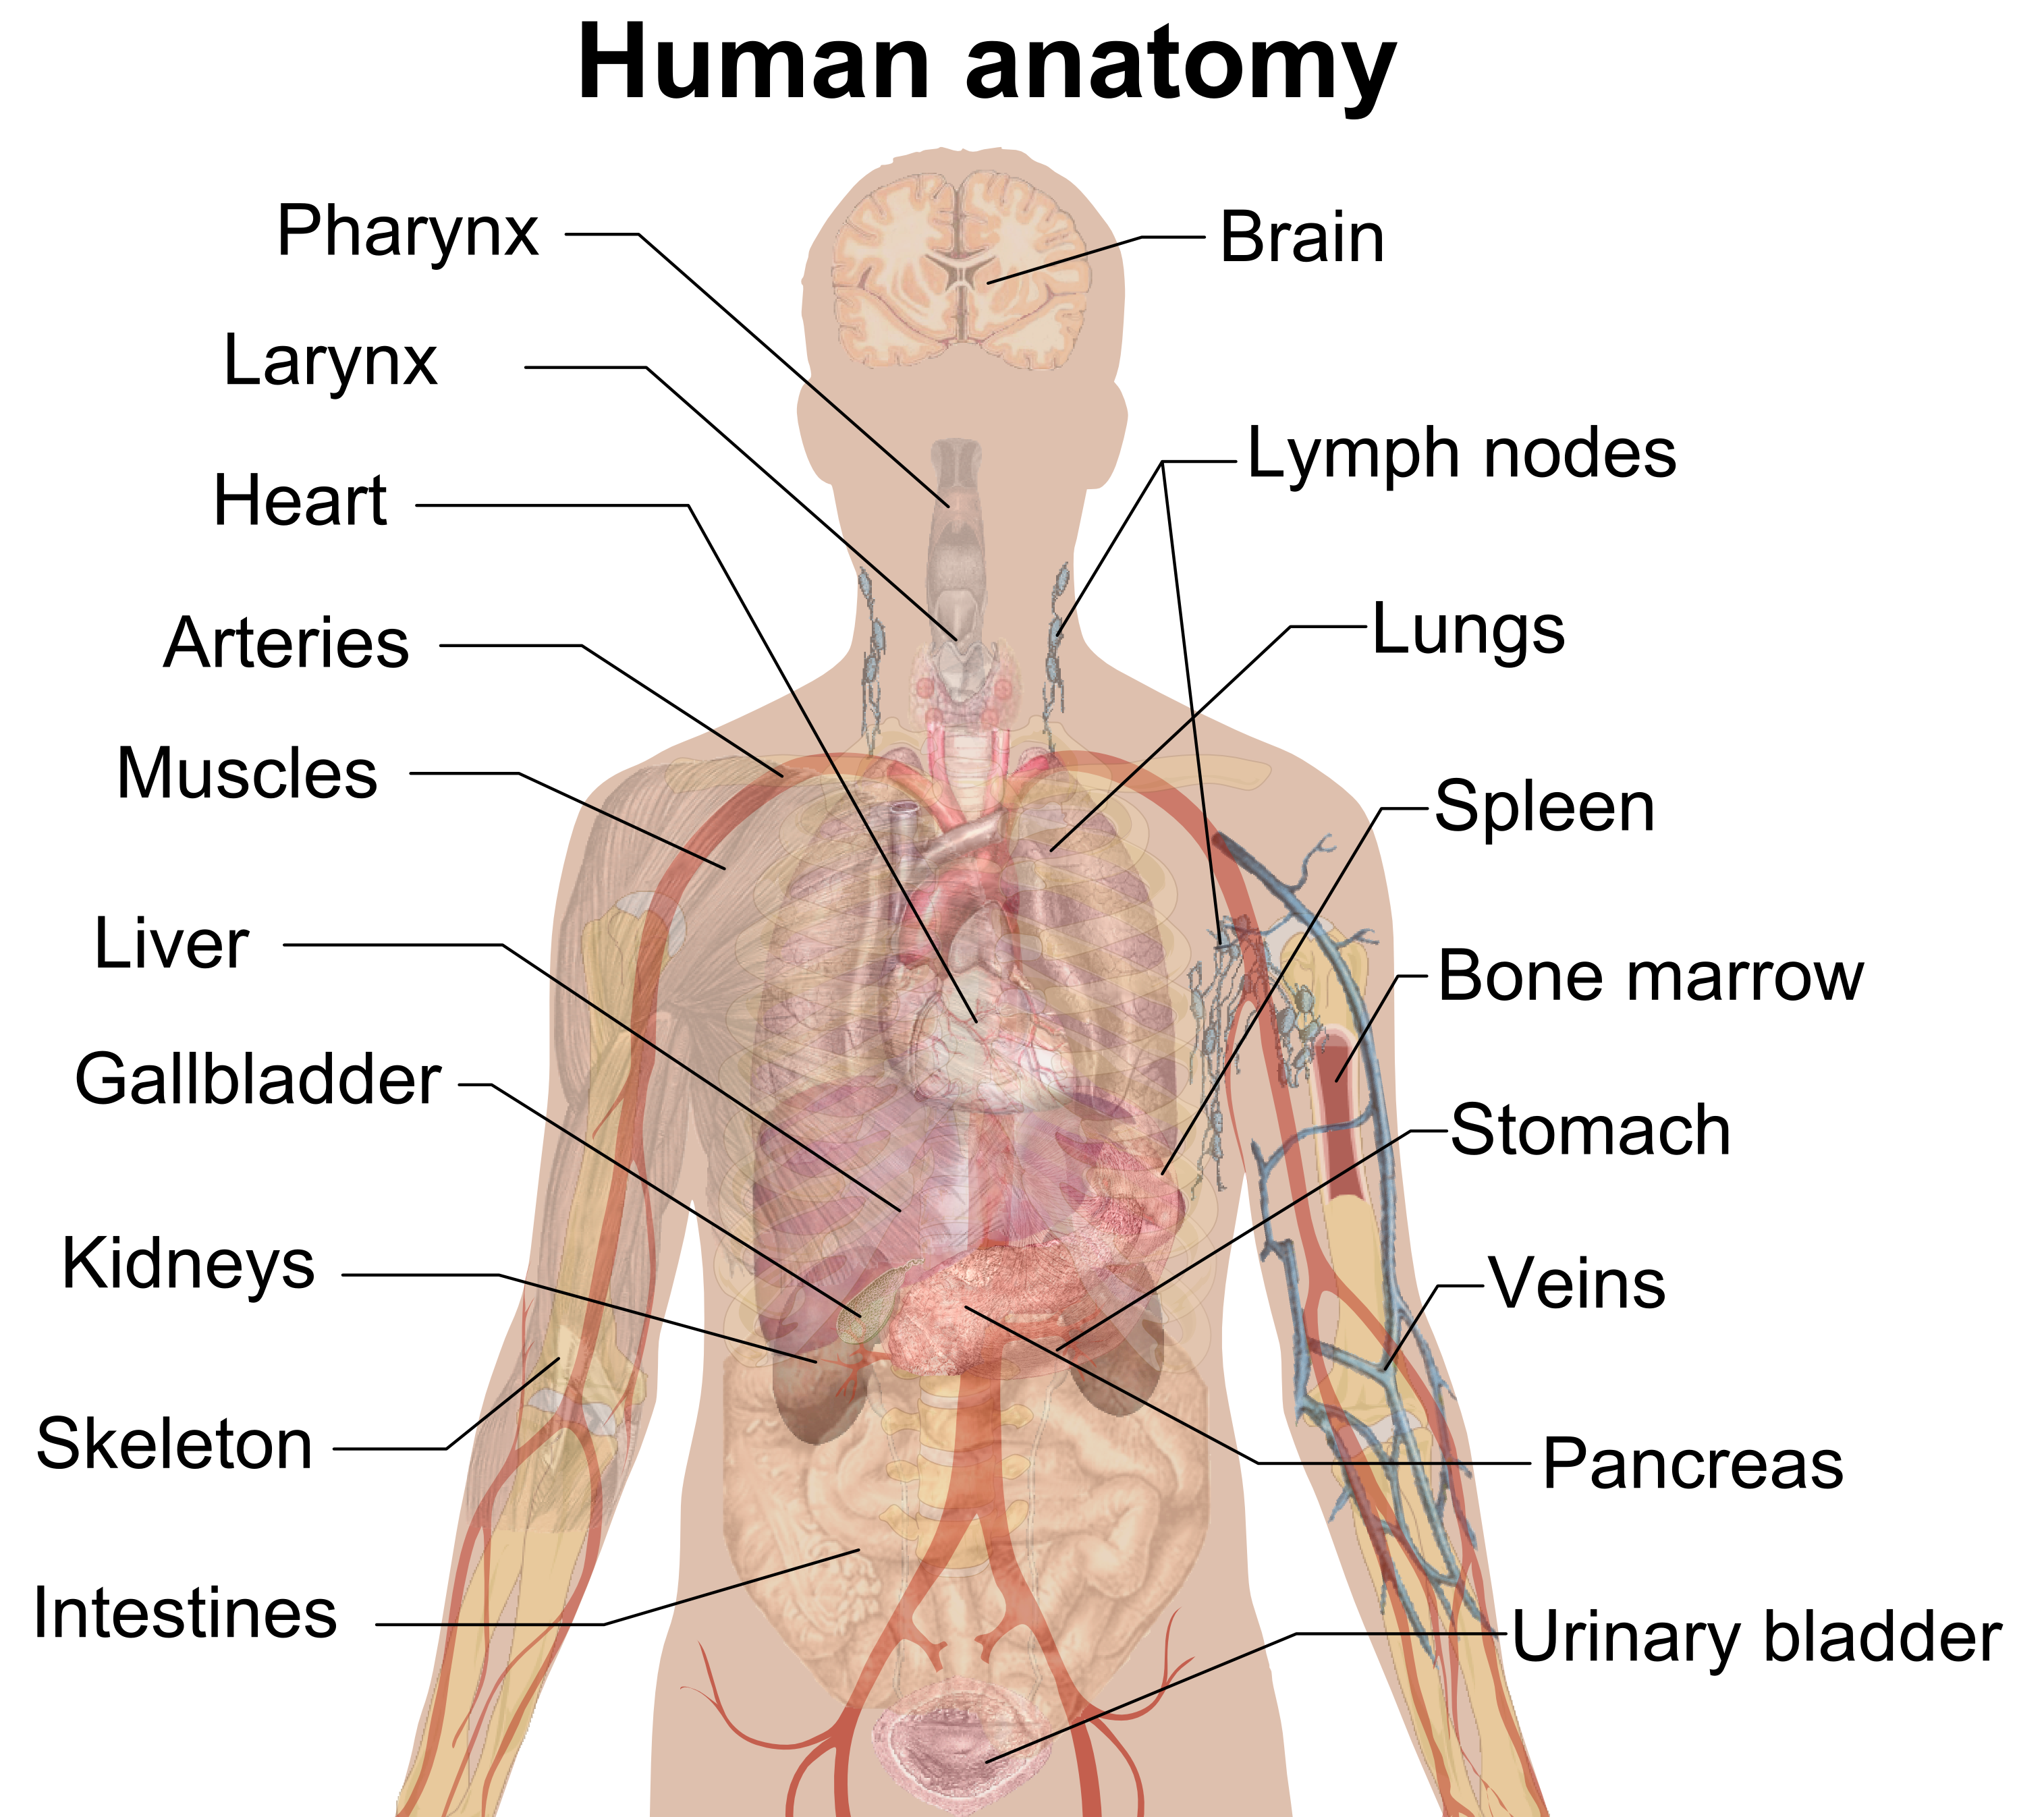 Fileman shadow anatomyg wikimedia commons fileman shadow anatomyg ccuart